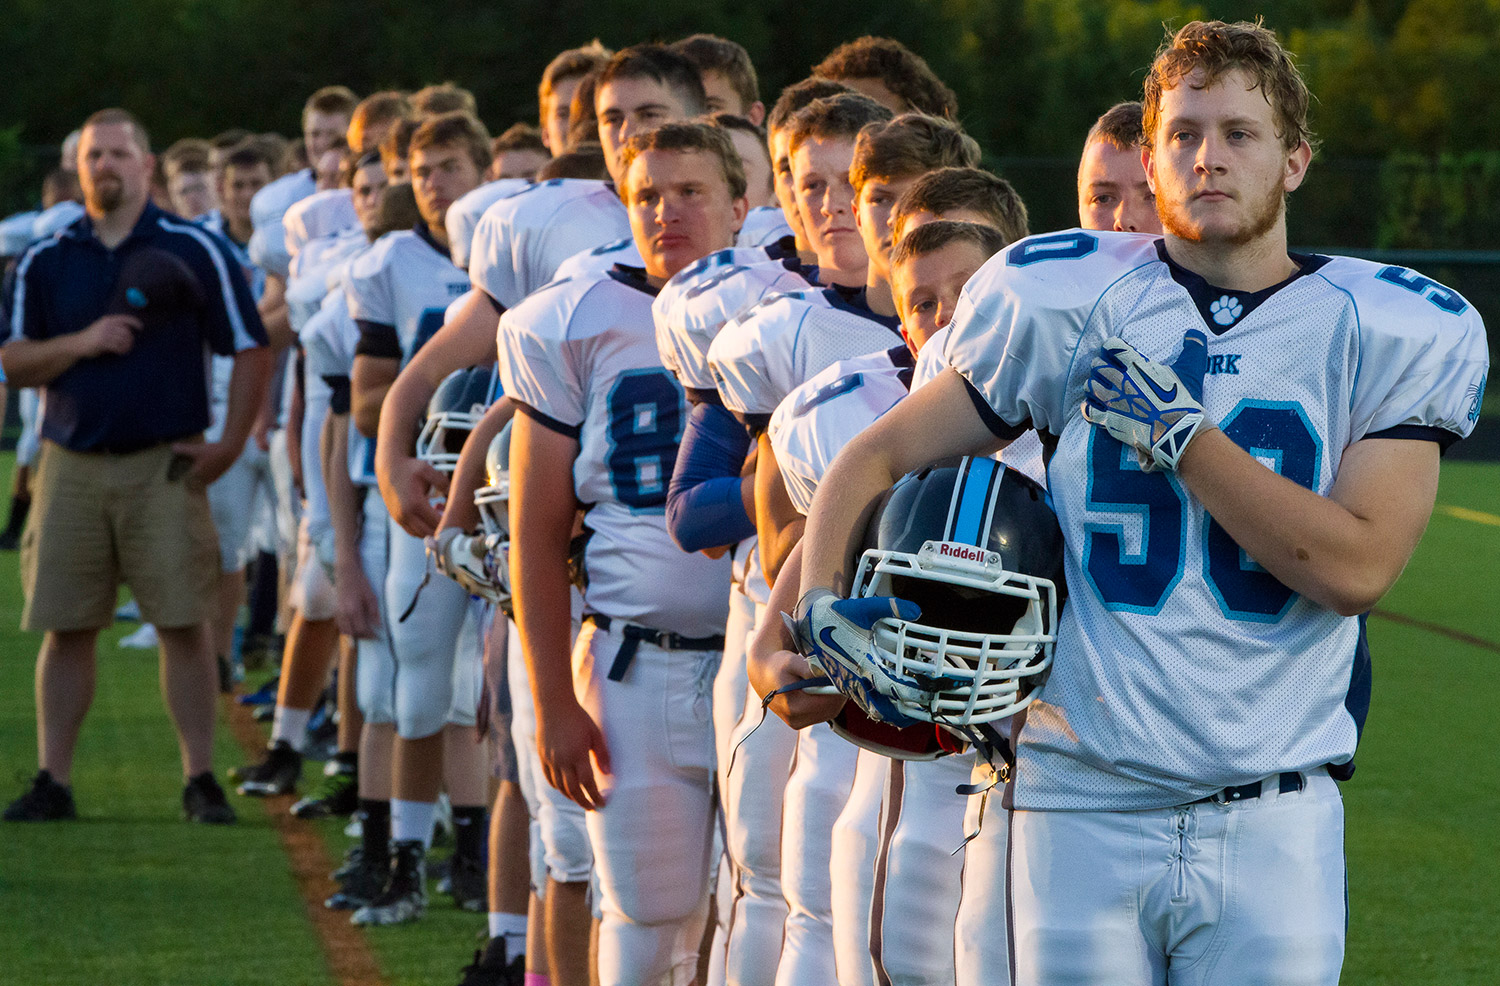 The York High School Wildcats stand for the Pledge of Allegiance at the start of their season opener Friday night at Falmouth.